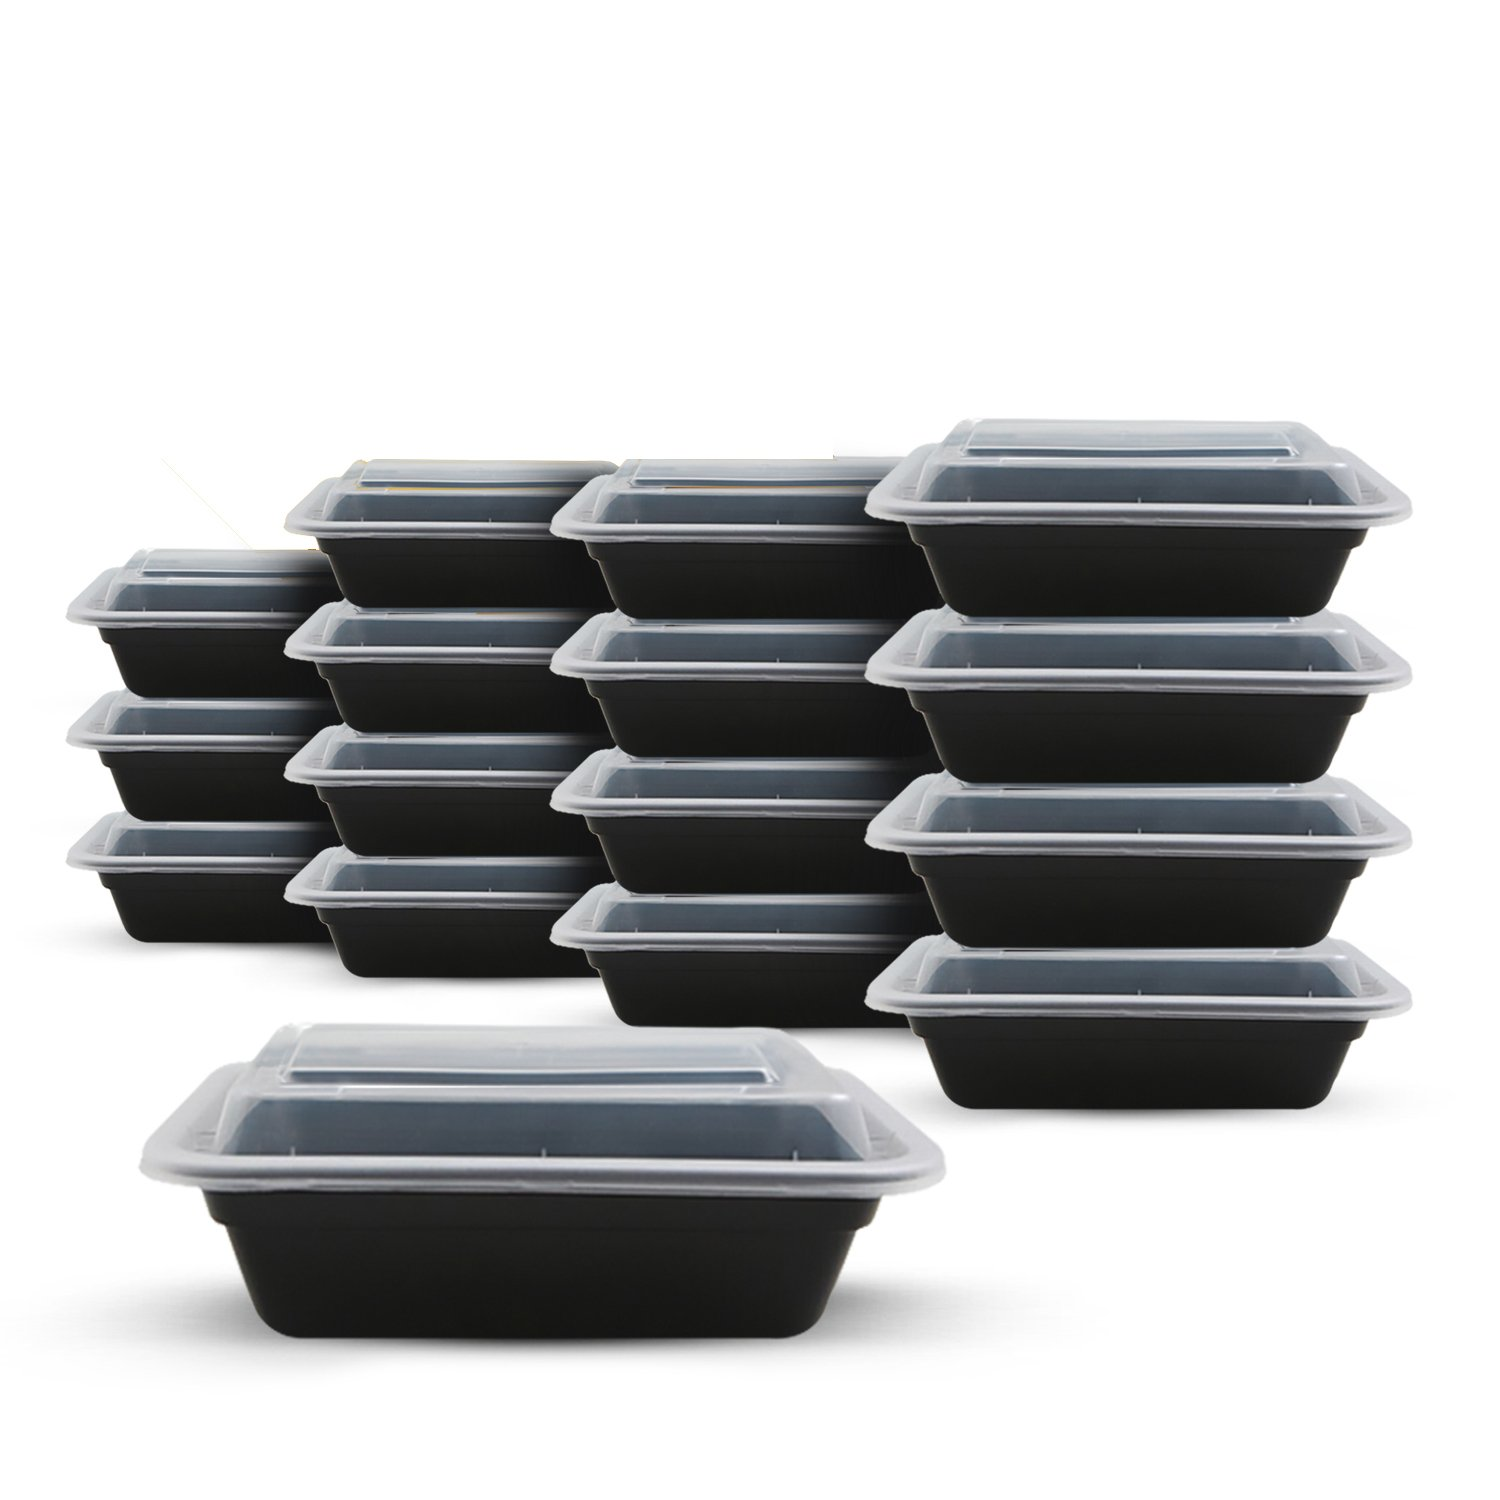 Fitpacker SMALL Meal Prep Containers - Plastic Stackable Reusable Storage - Microwave, Dishwasher, Freezer Safe (16oz - Set of 16)